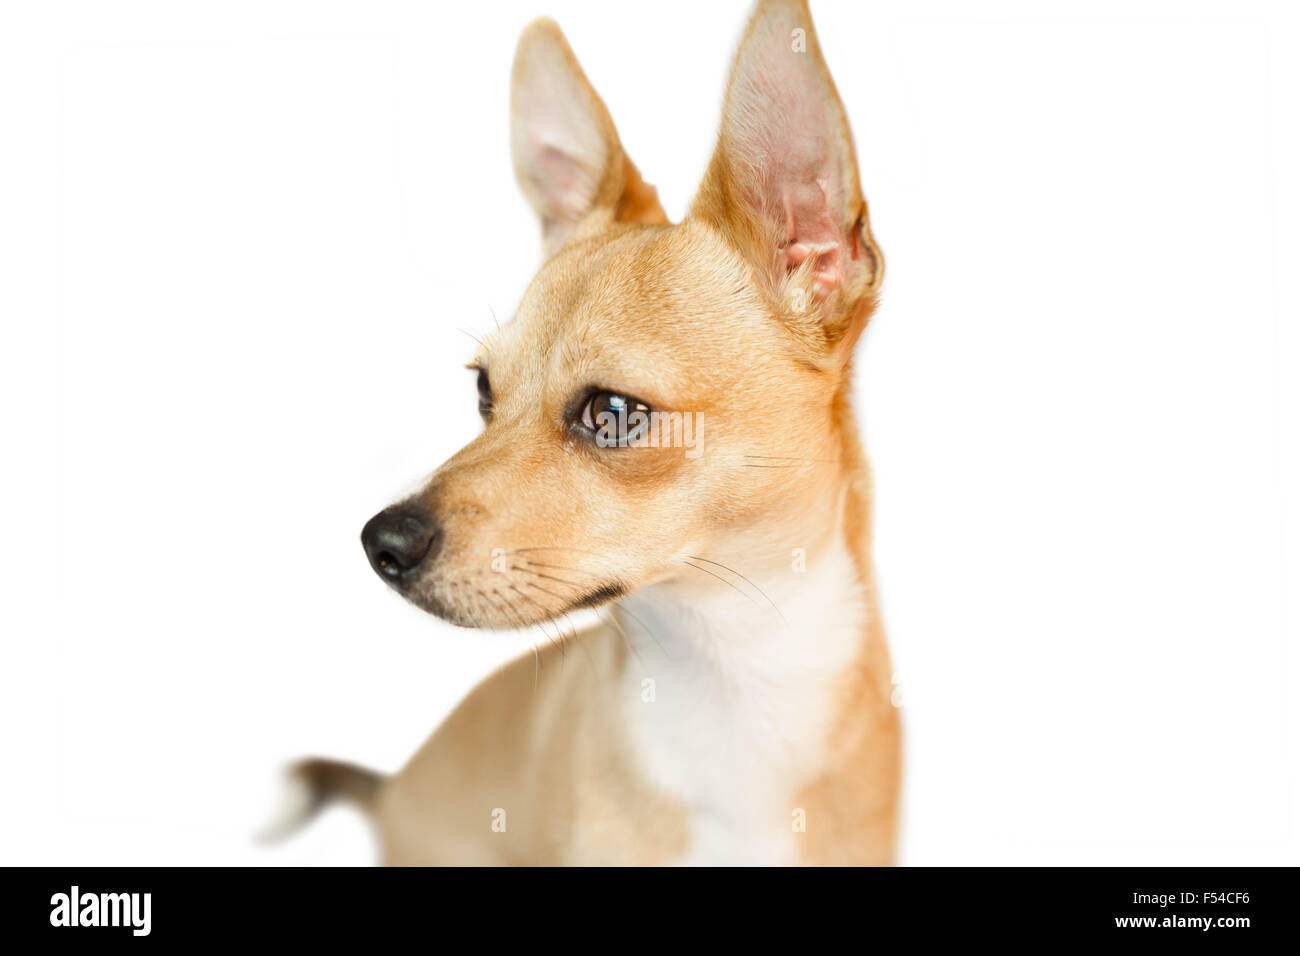 Cute dog with pointy ears - Stock Image